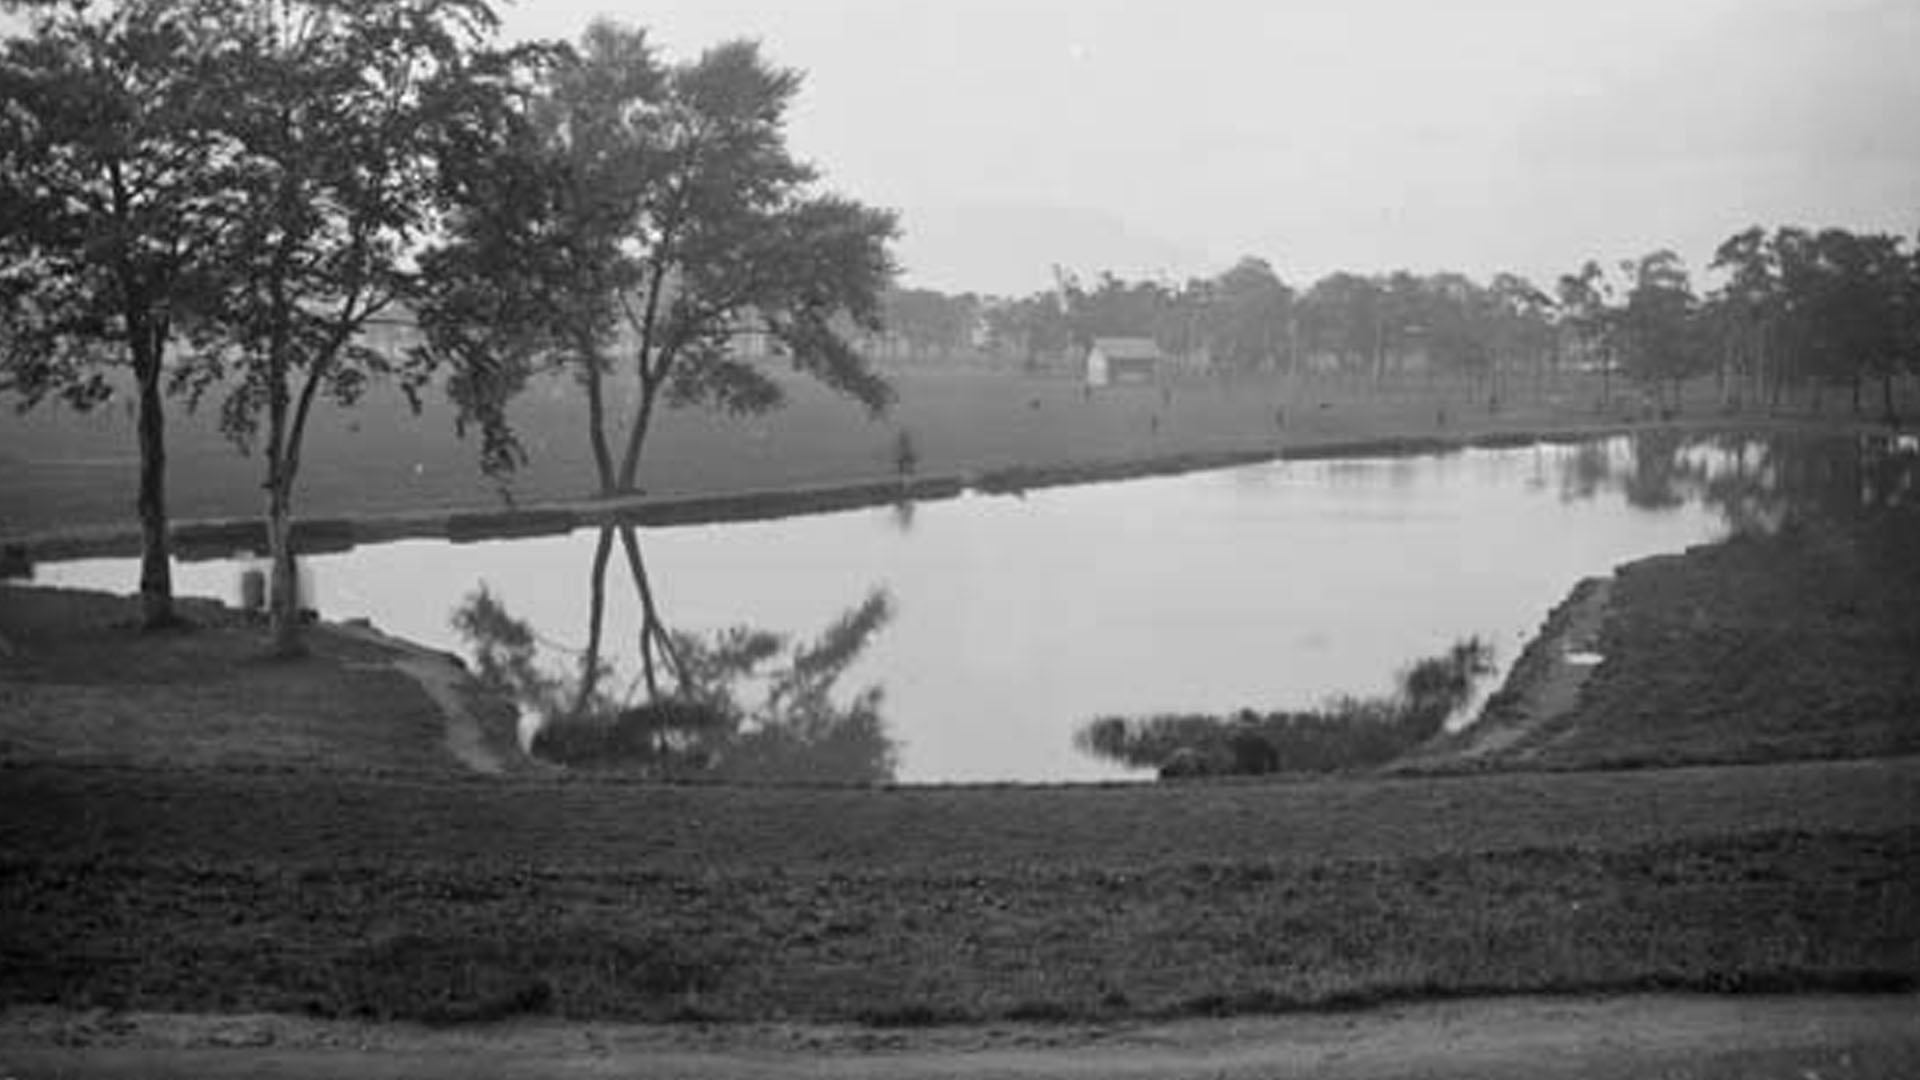 Ormeau Park Lake, Ormeau, South Belfast, Co. Antrim